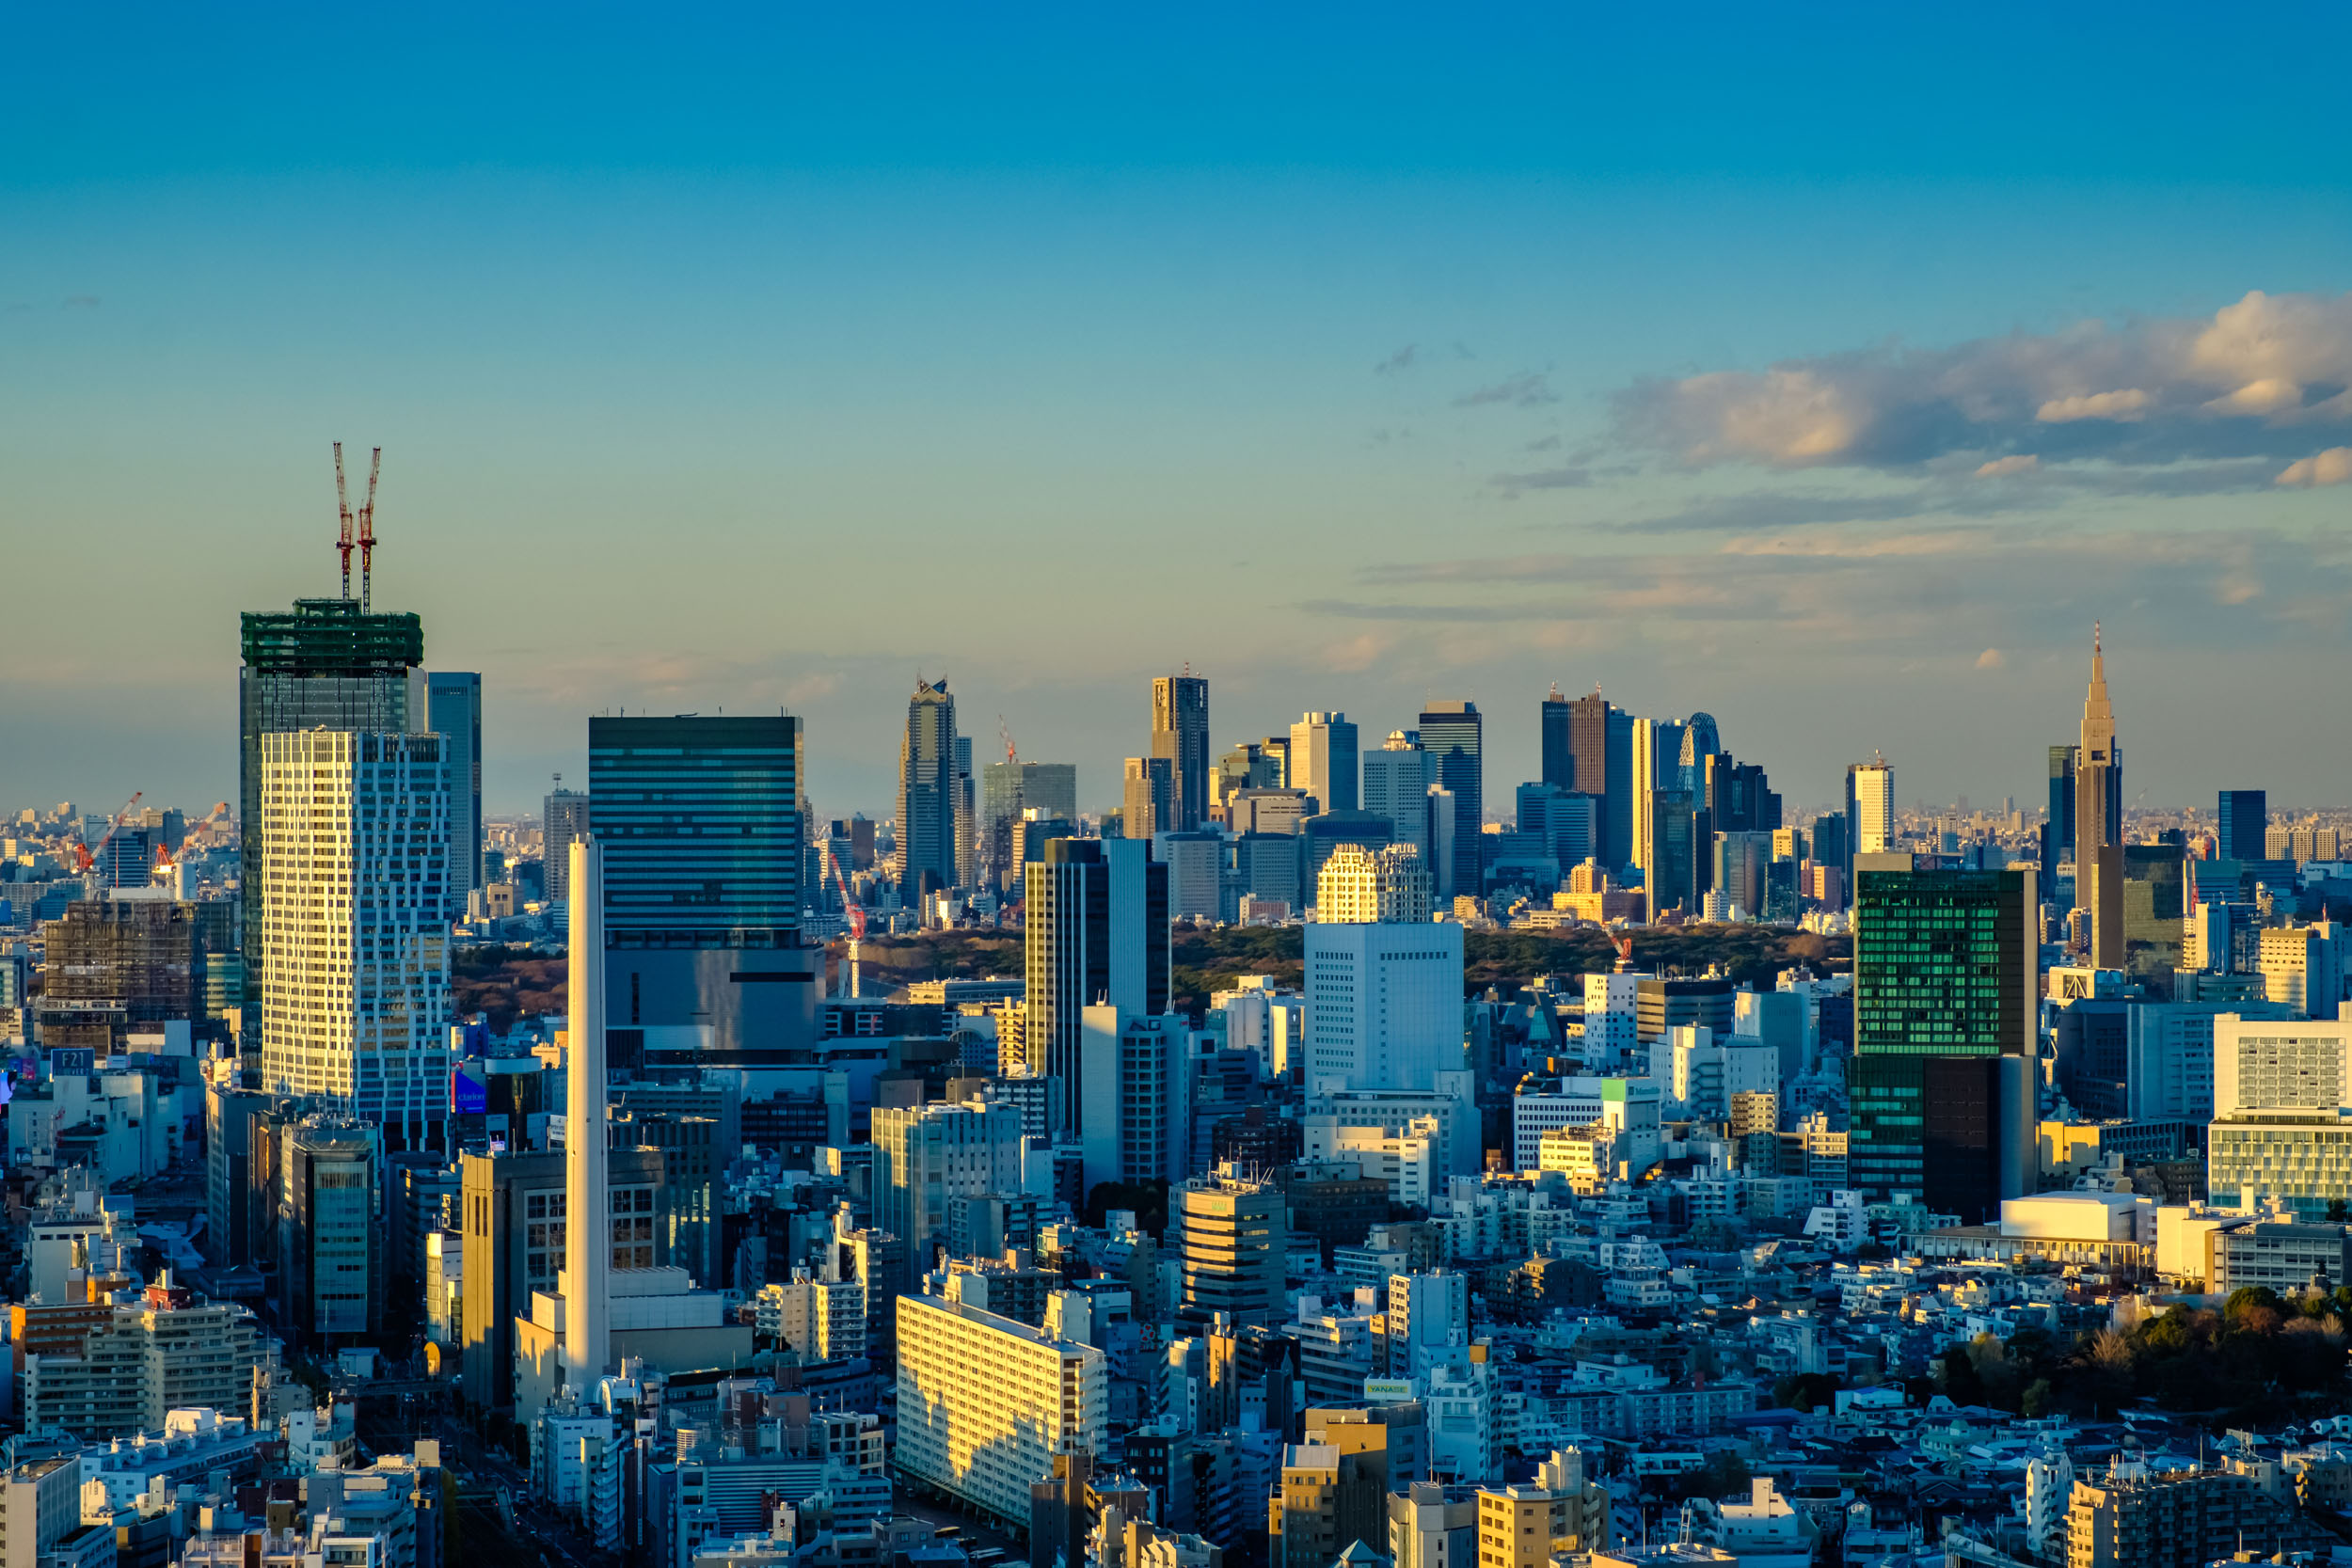 To the north you'll find Shibuya, which is closest, and slightly further away is Shinjuku.